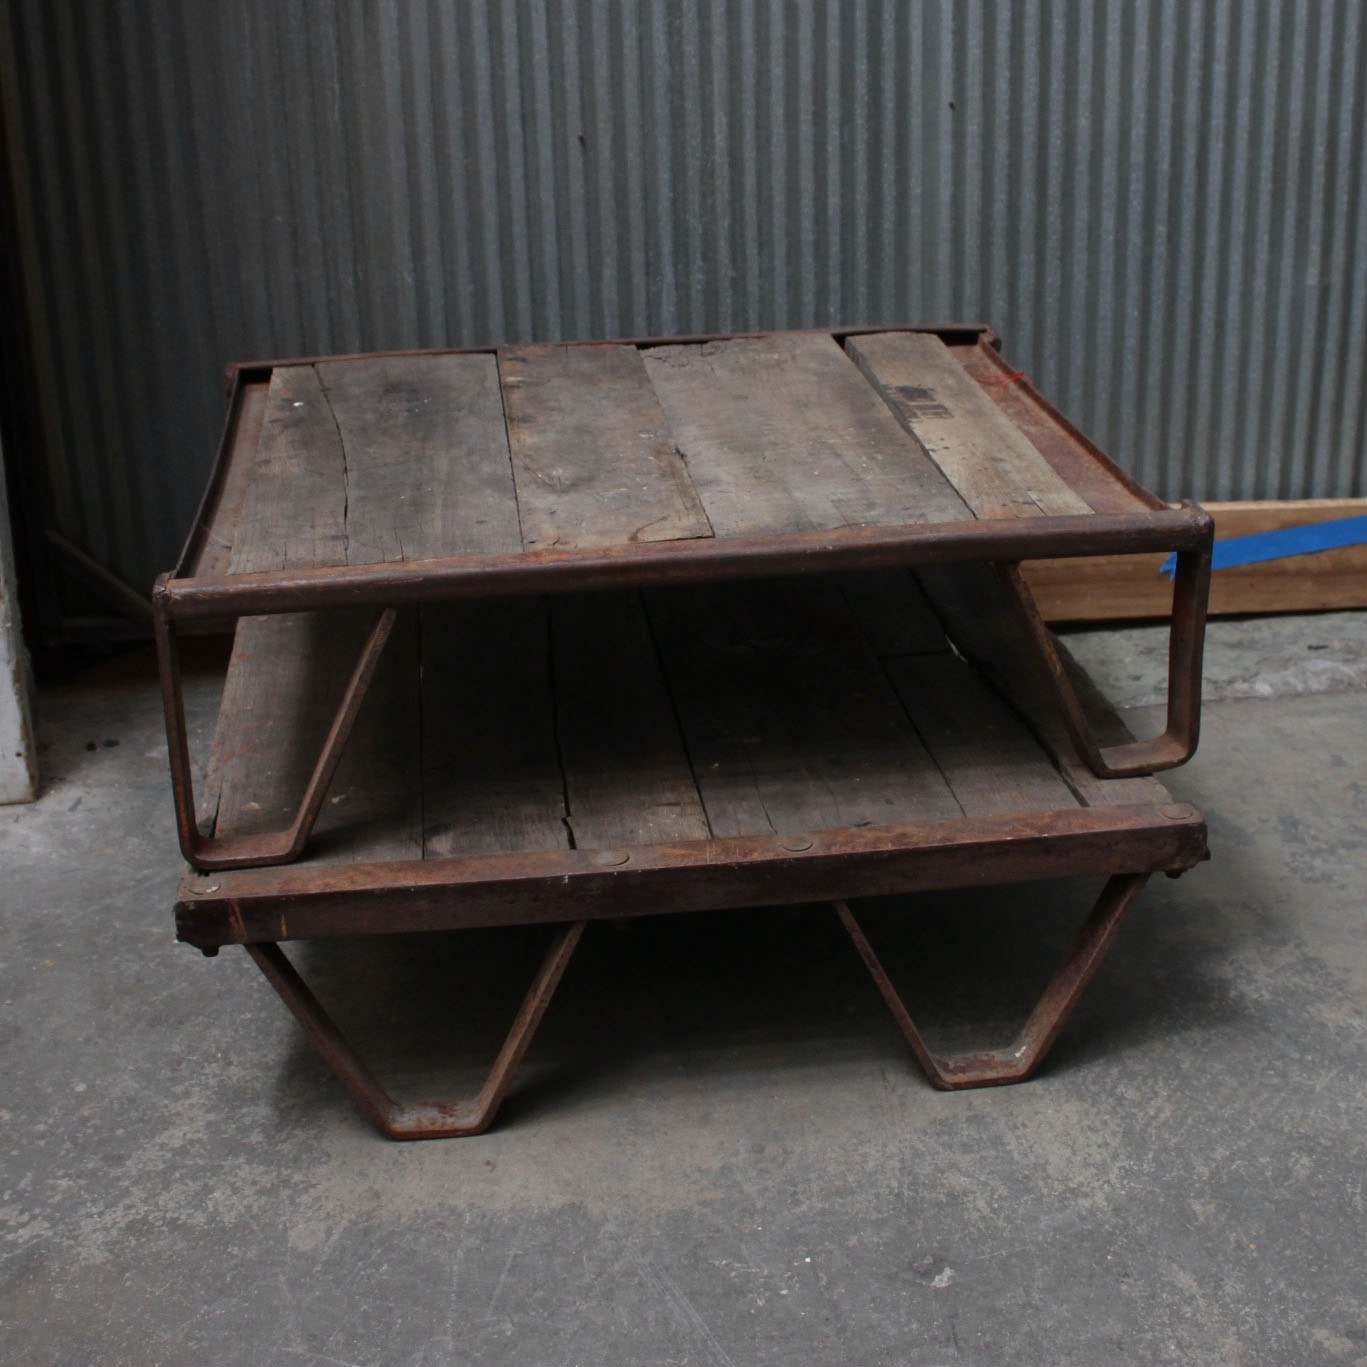 Good Vintage Industrial Style Coffee Tables ...